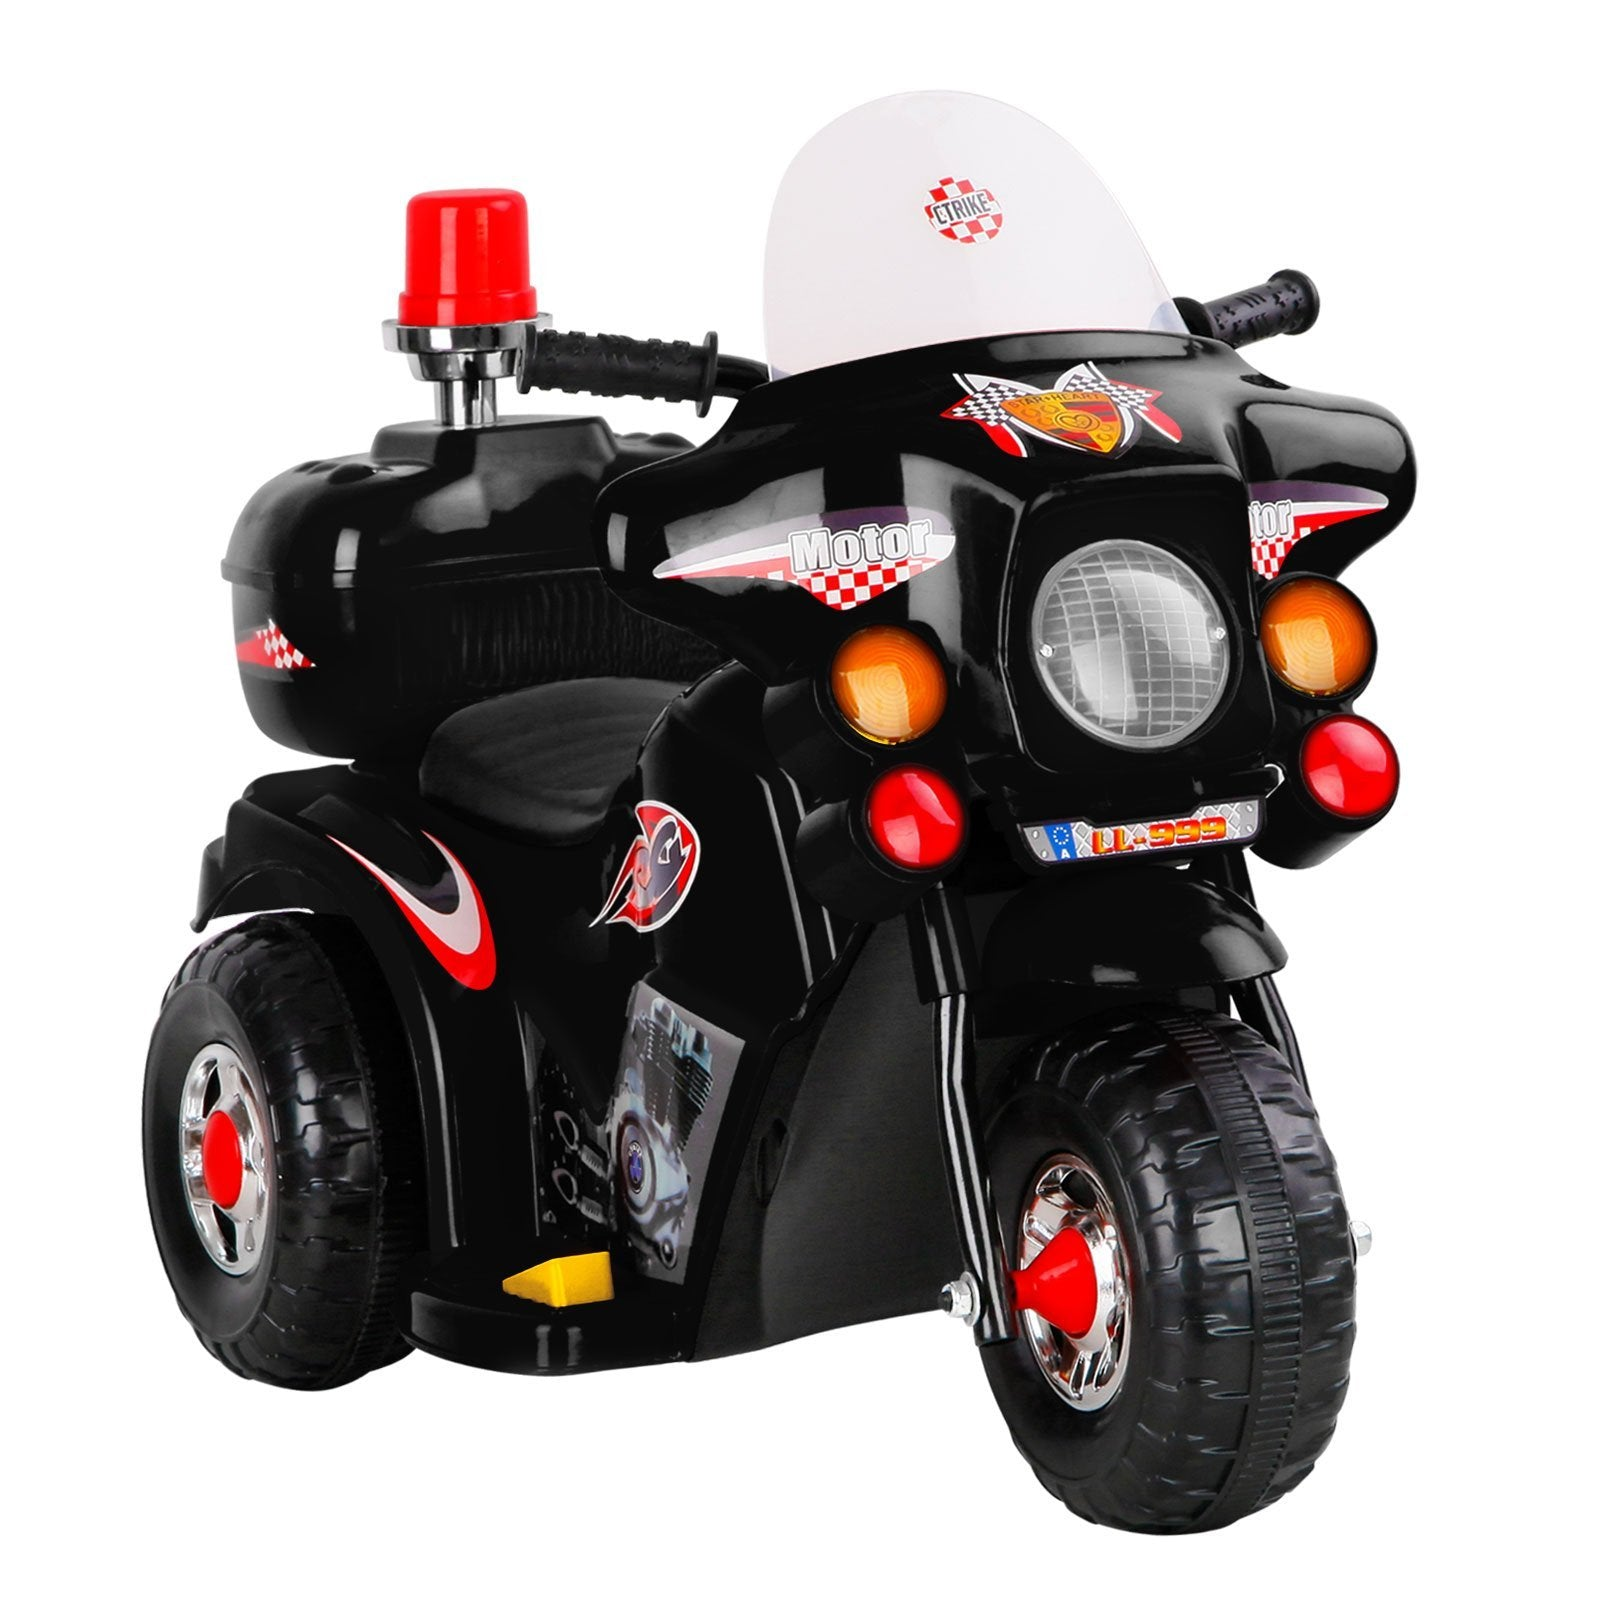 Rigo Kids Ride On Motorbike Motorcycle Car Black - Kids Decor Factory